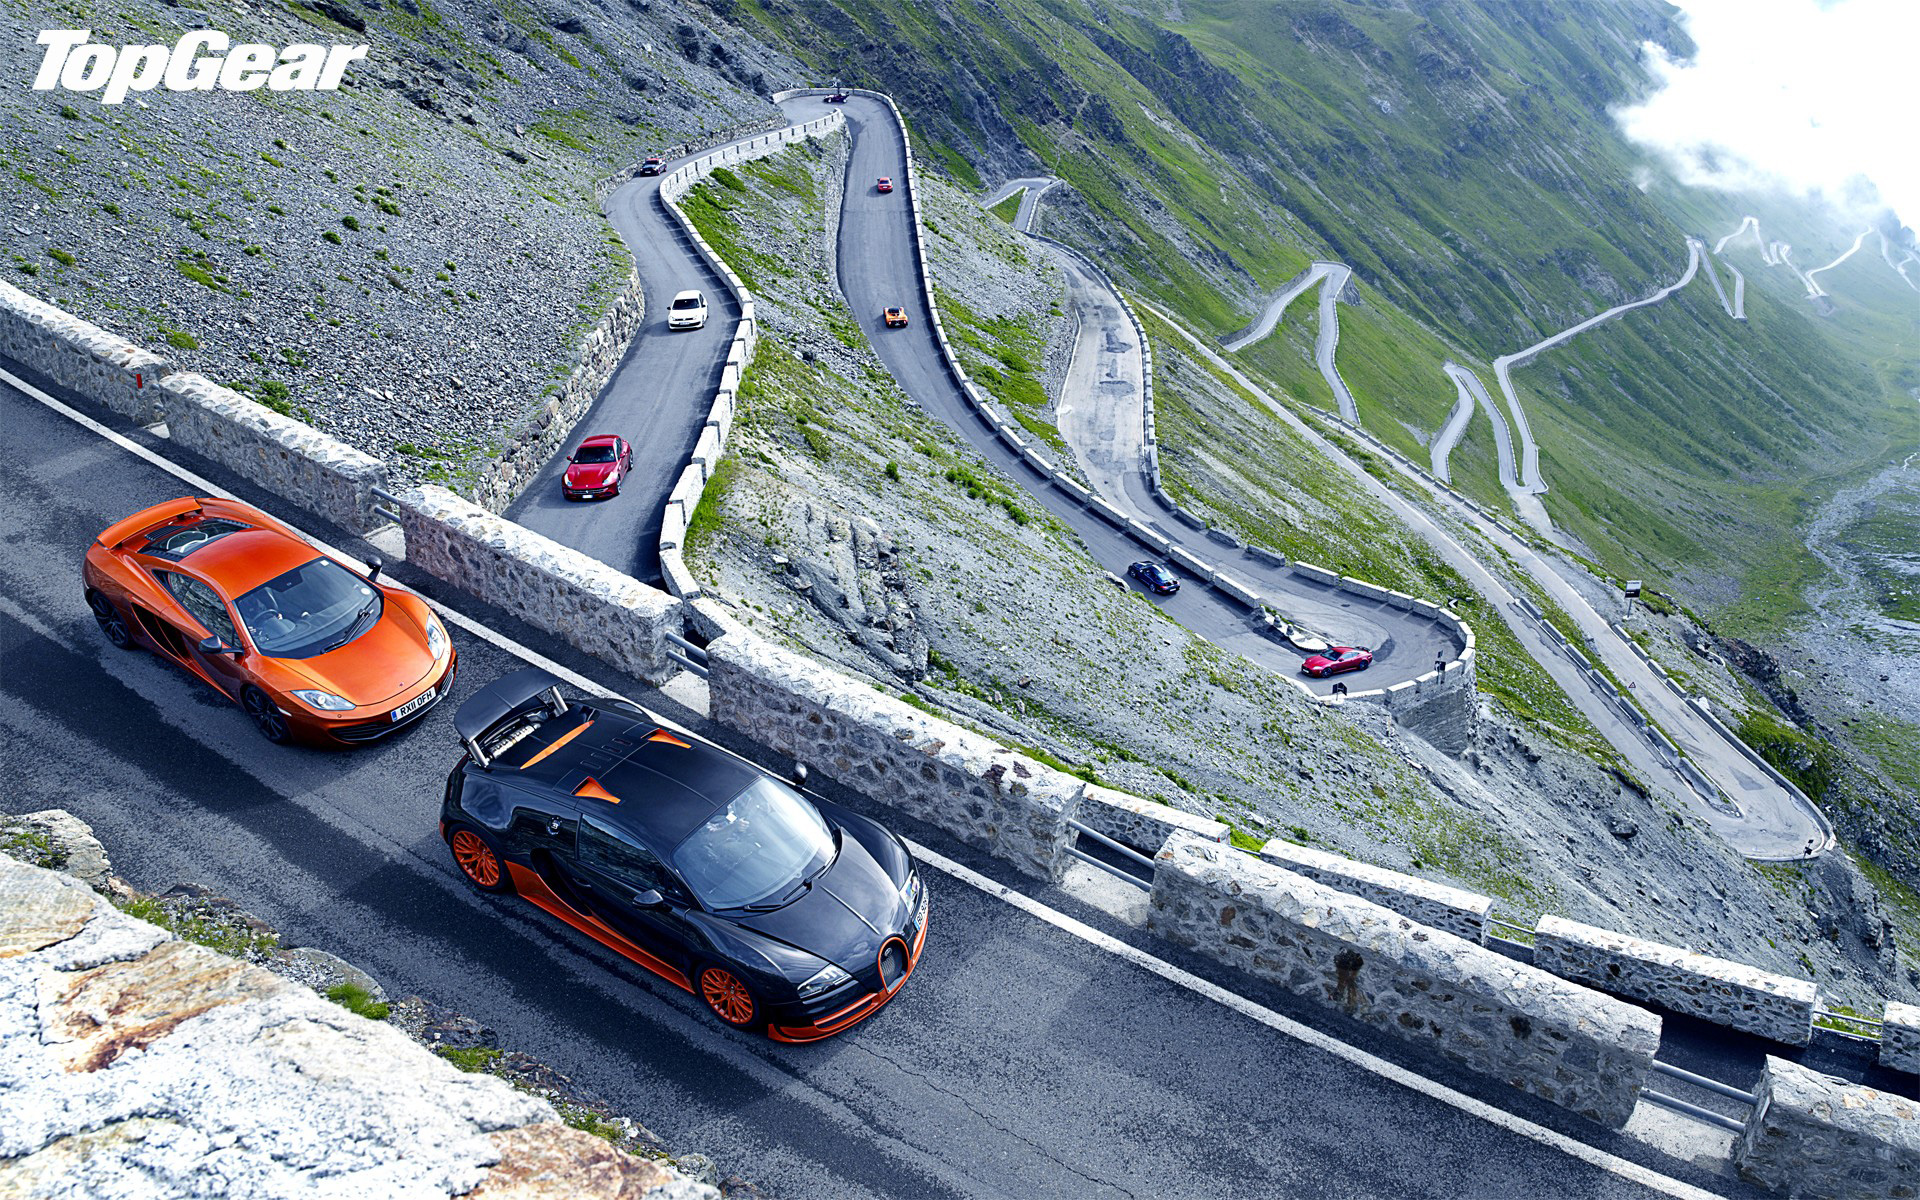 enjoy and one last set of top gear wallpapers to post parts one and - Bugatti Veyron Super Sport Top Gear Wallpaper